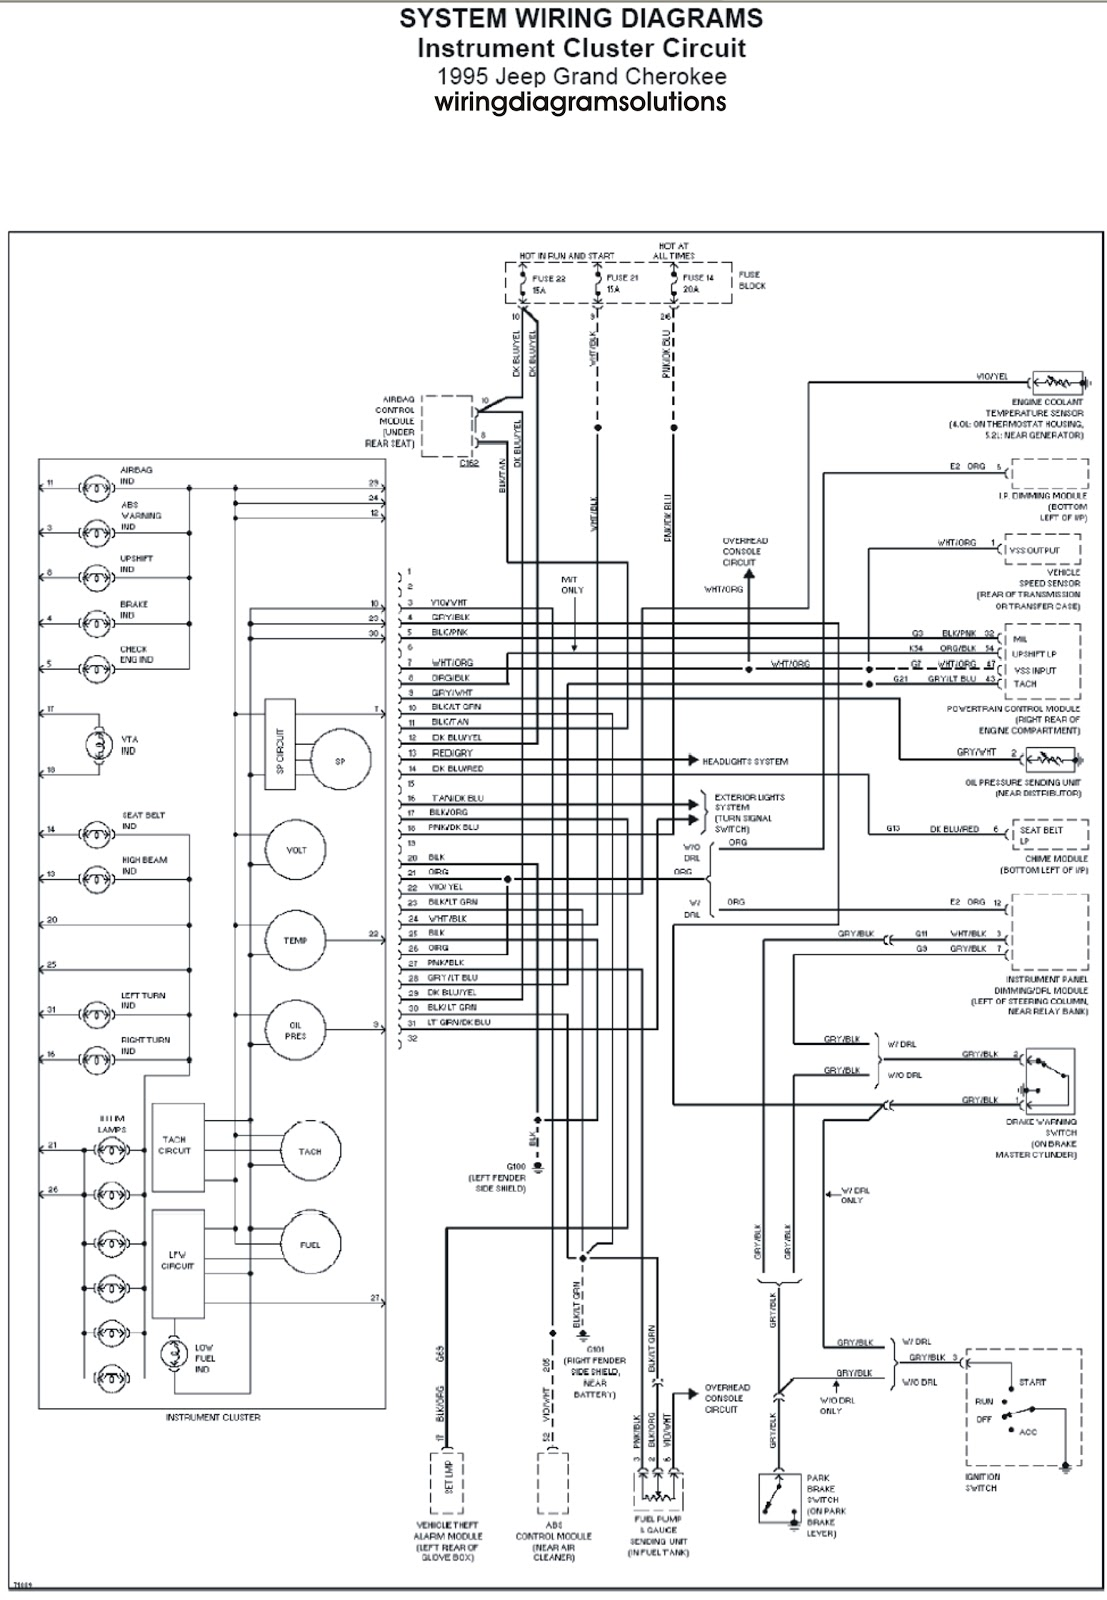 Cx Jeep Wire Harness Diagram Wiring Diagram